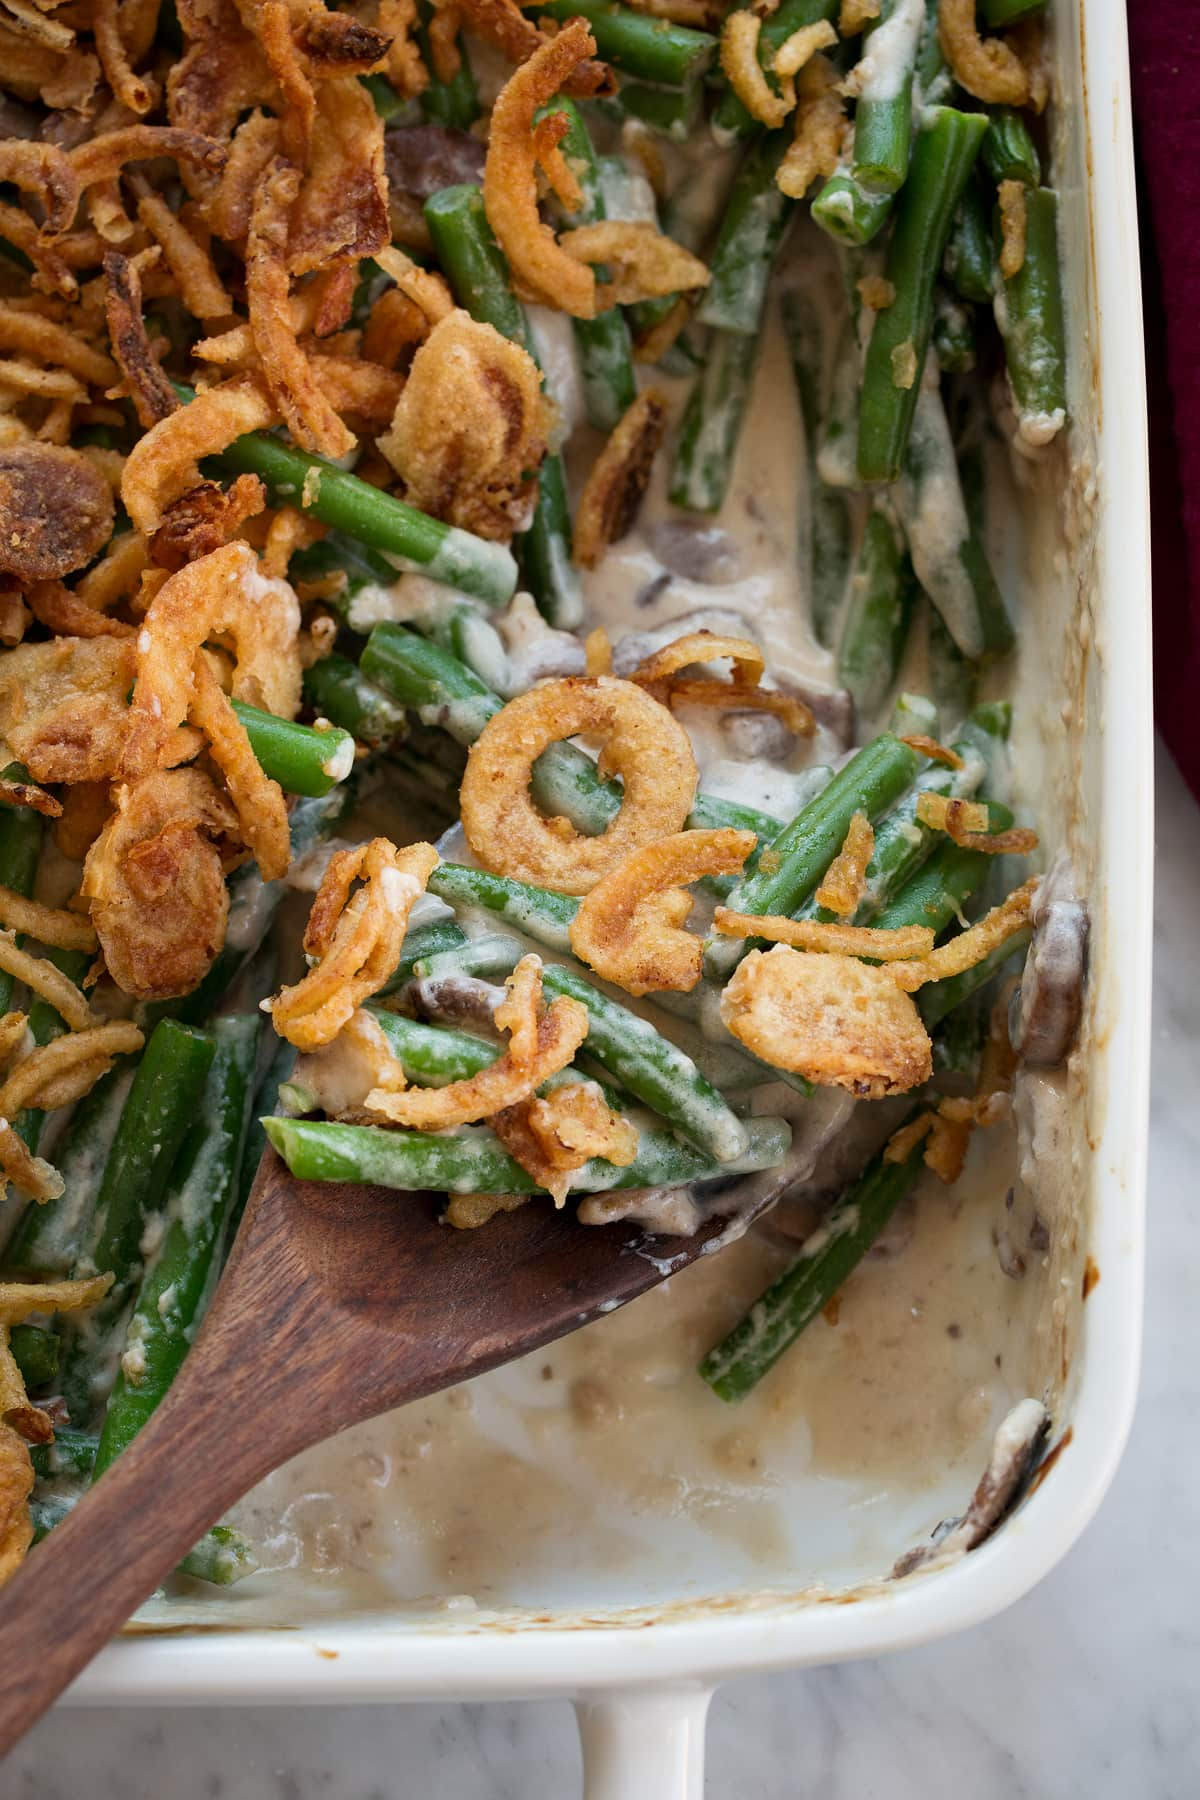 Close up image of scoop of green bean casserole on a wooden spoon.